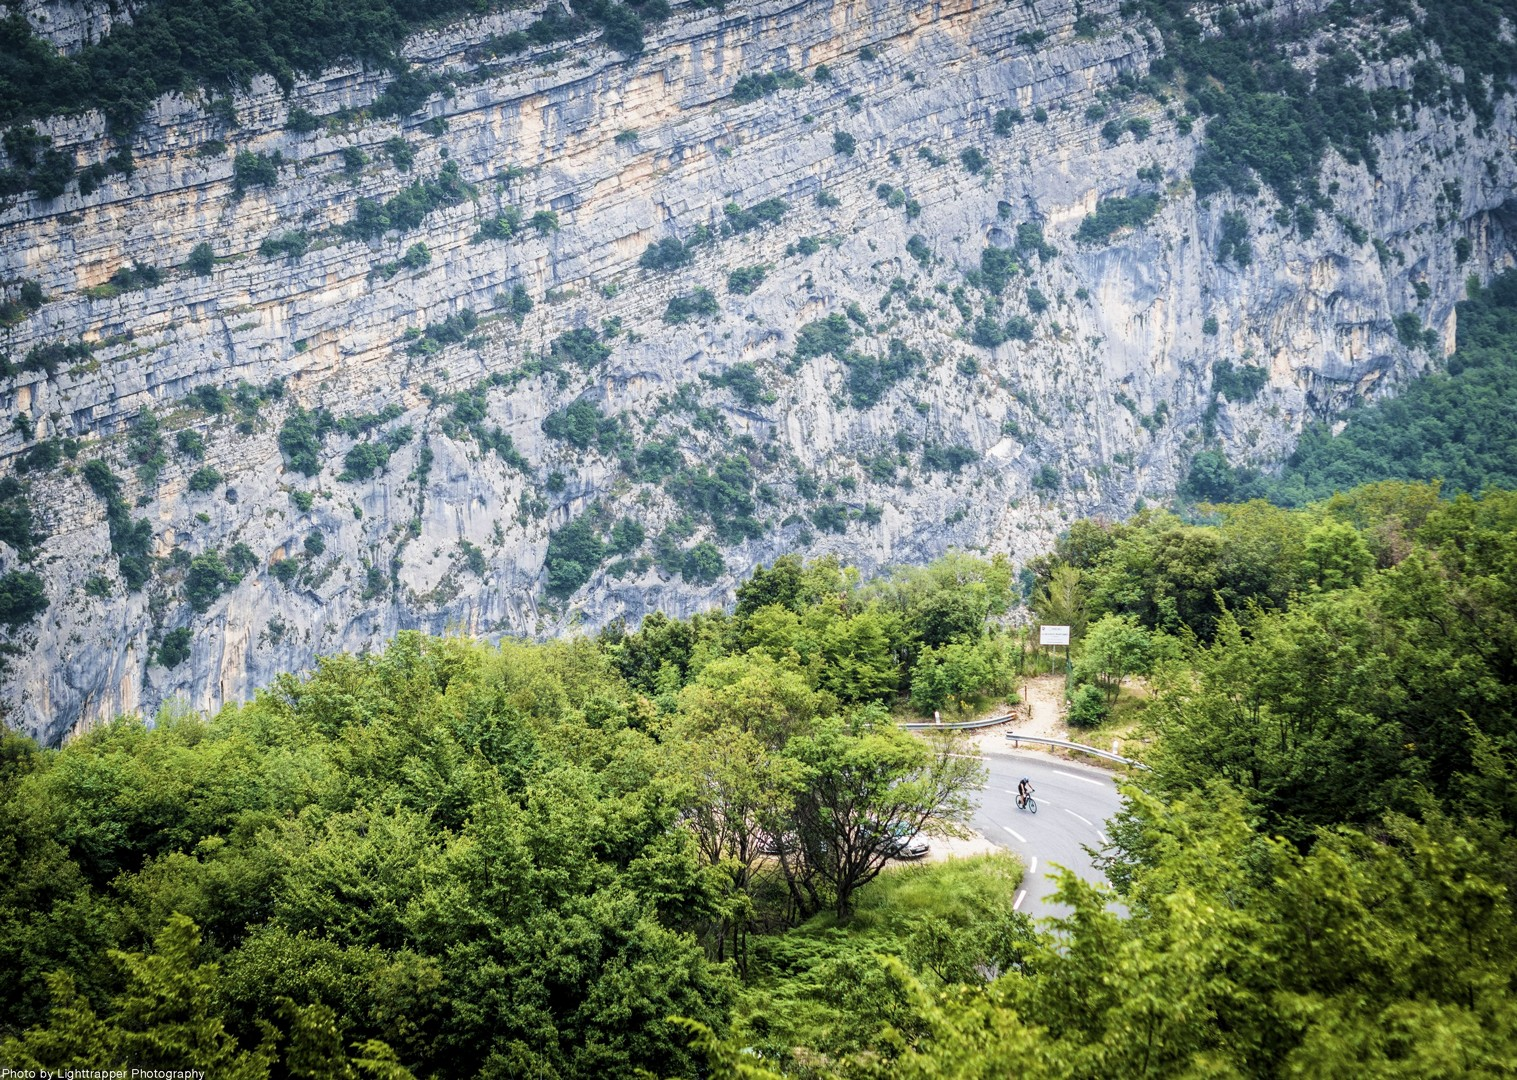 monte-carlo-rally-col--de-turini-road-cycling-tour.jpg - France - Provence - Alpes Maritimes - Guided Road Cycling Holiday - Road Cycling